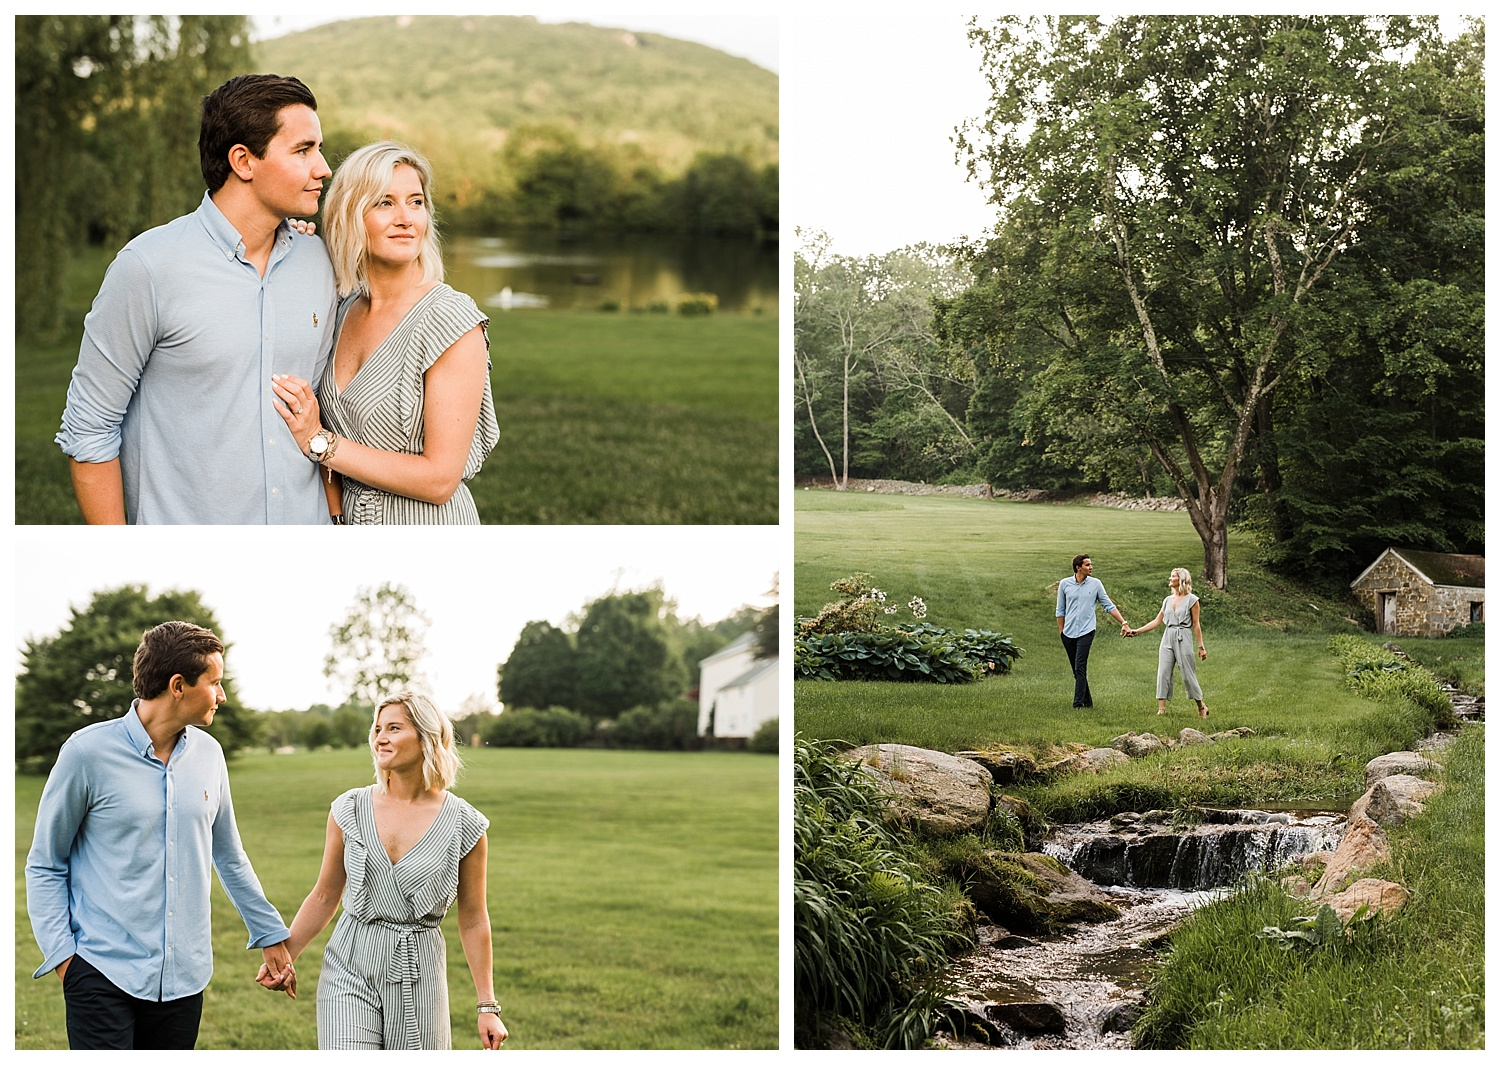 Hunterdon_County_Engagement_Session_Apollo_Fields10.jpg